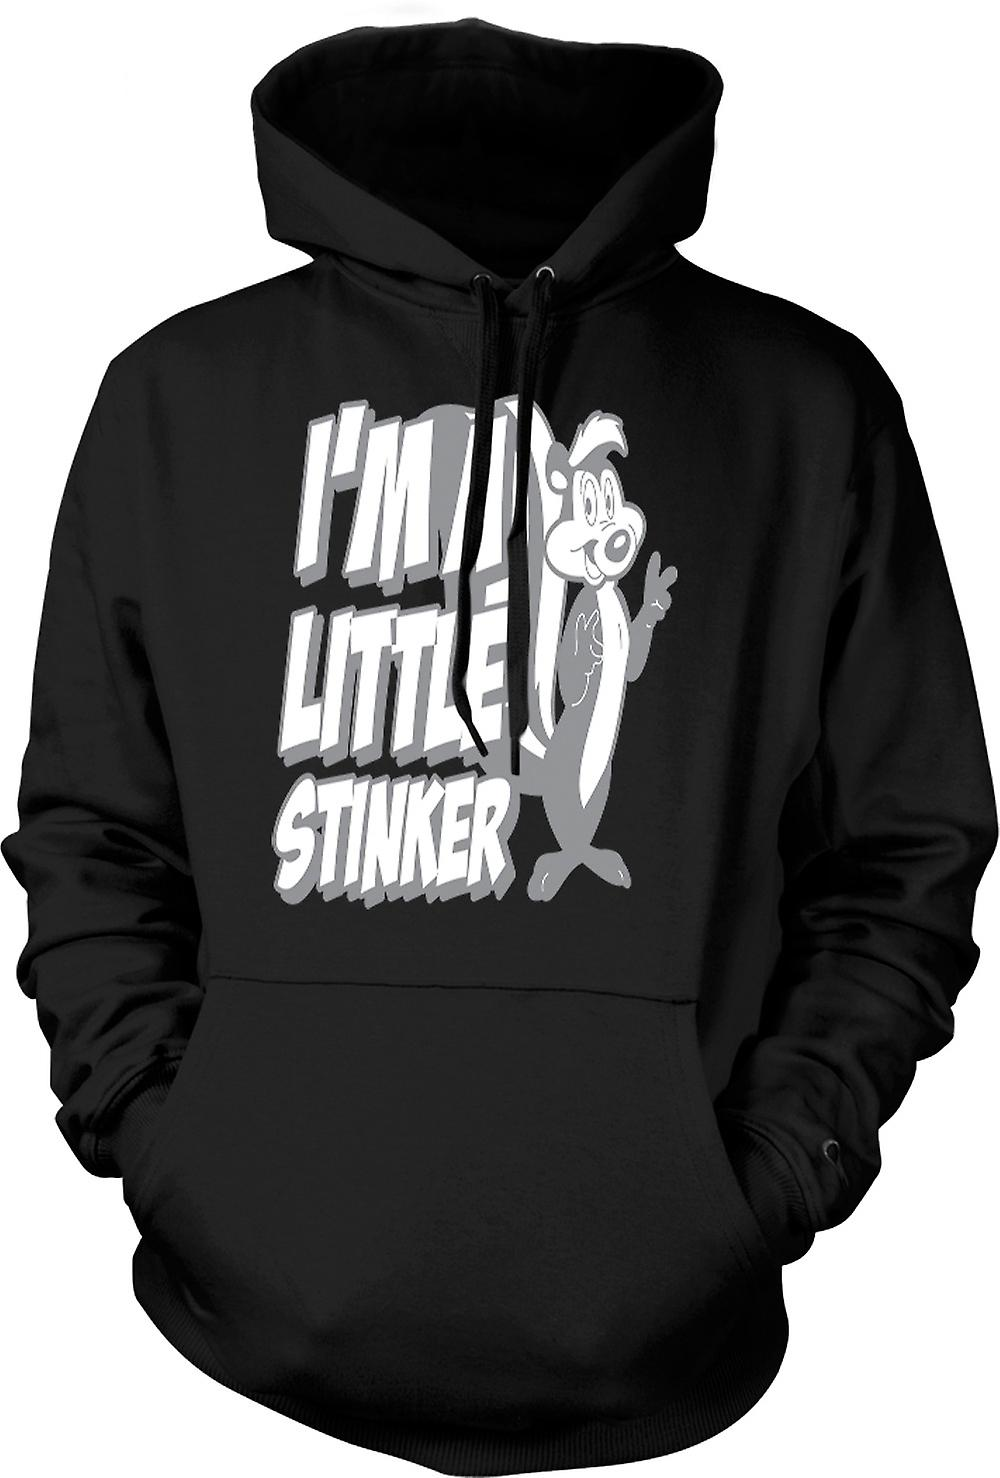 Mens Hoodie - Pepe Le Pew Skunk - Funny Cartoon